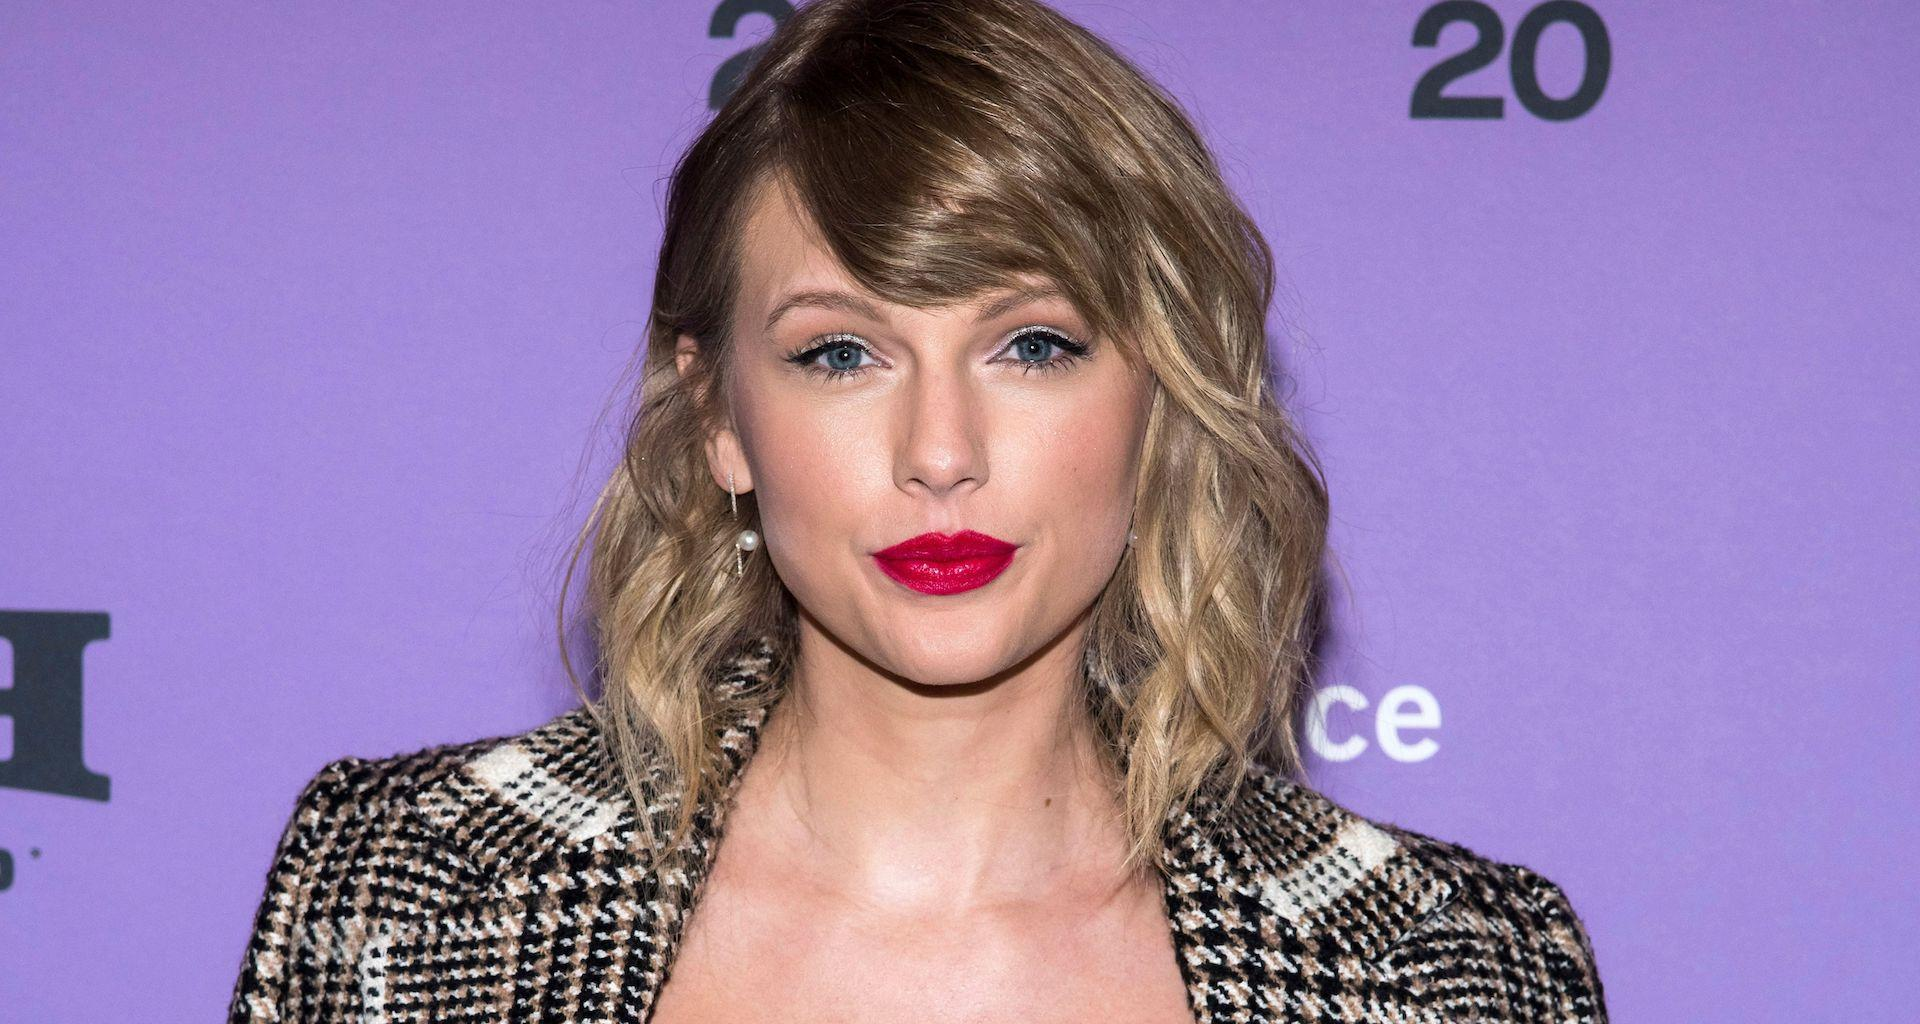 Taylor Swift Demands For The Racist Statues In Her State To Be Taken Down - Says They Make Her 'Sick!'